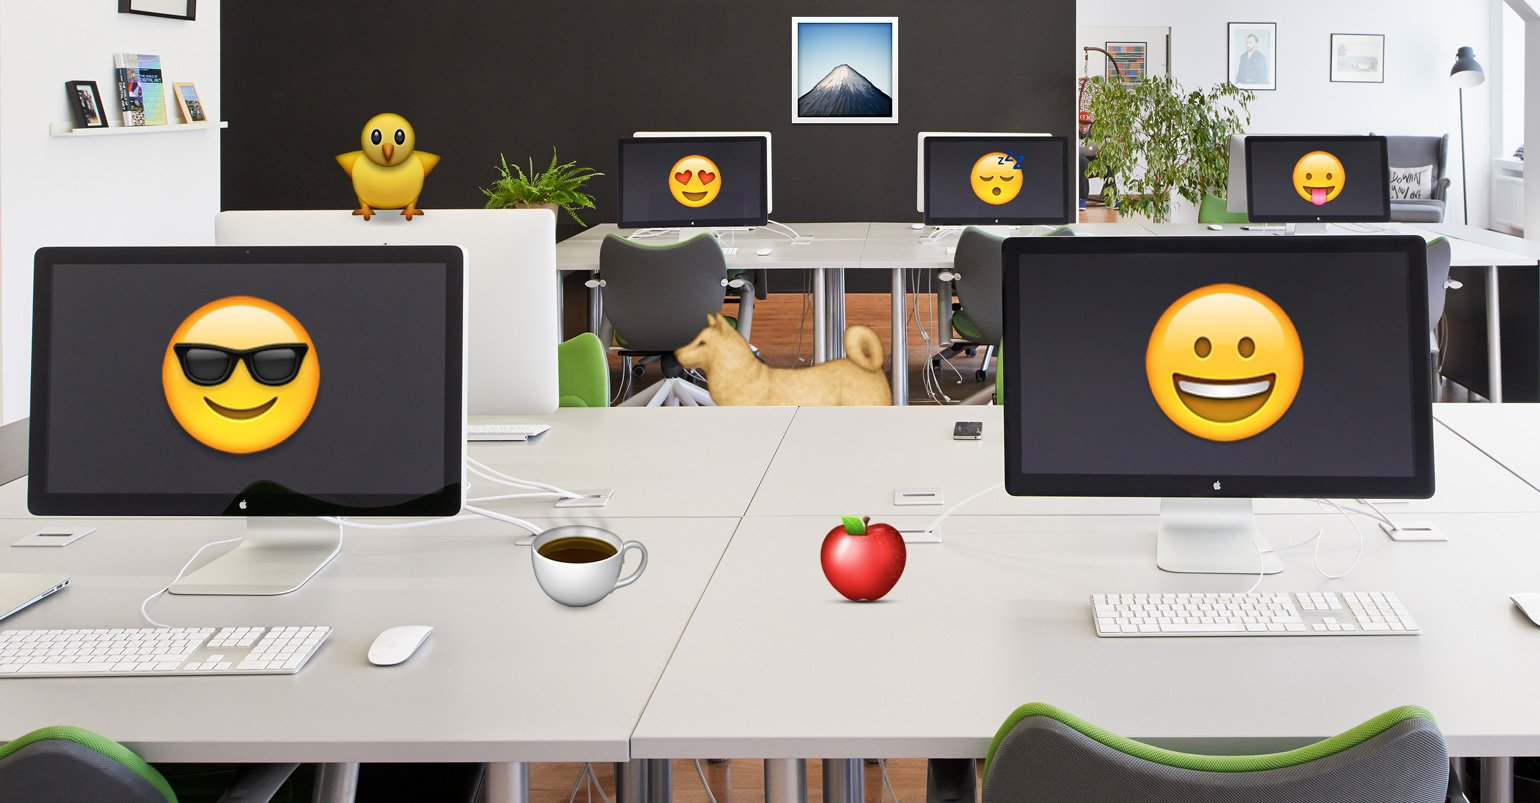 Express yourself with Emoji!